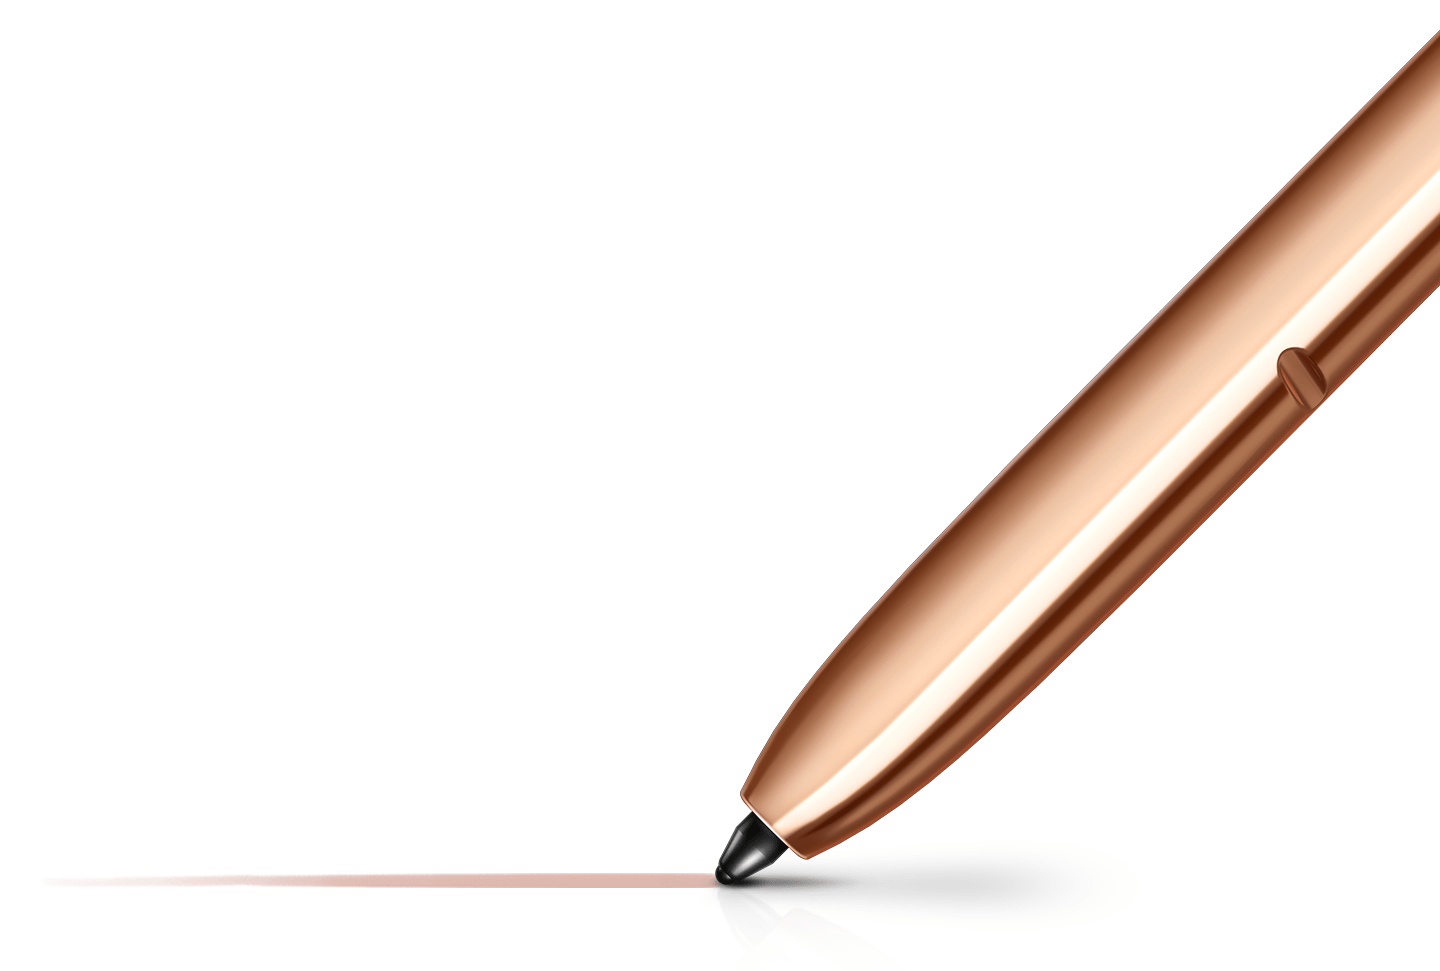 A close-up look of a Samsung Note20's Mystic gold S pen's tip overlaying a hyper white background, drawing a feathered line. A smart pen with incredible connectivity capabilities.